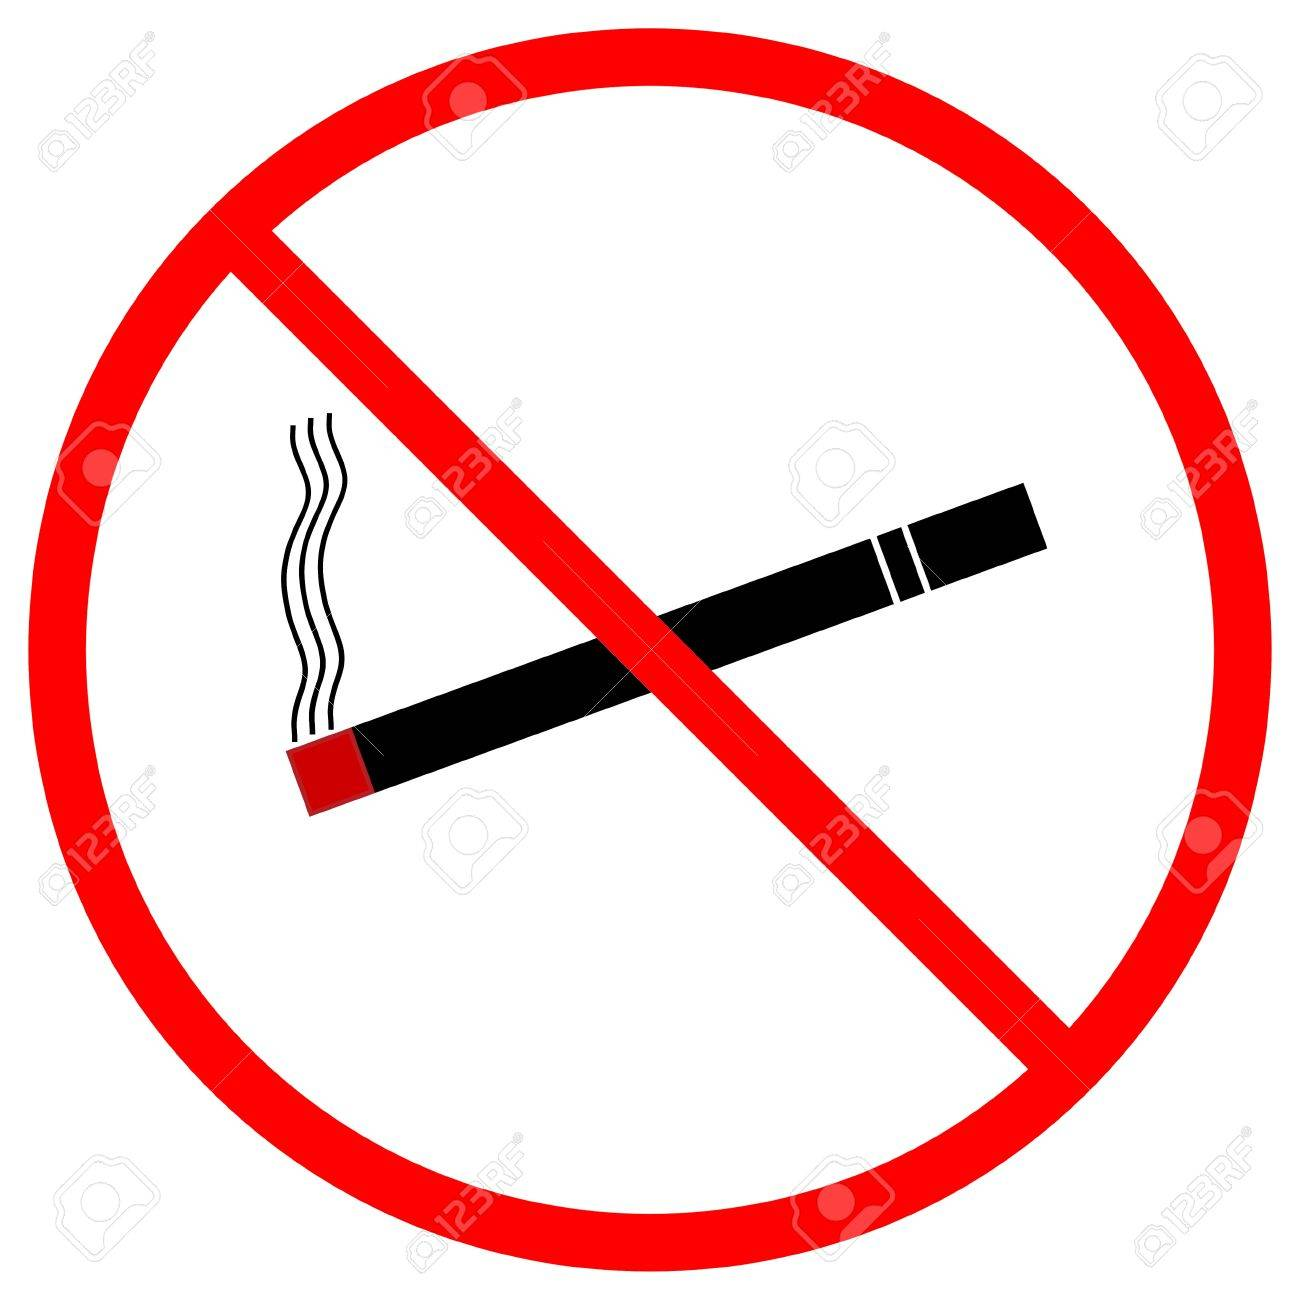 A graphic warning that smoking is prohibited, isolated on a solid white background - 13612819